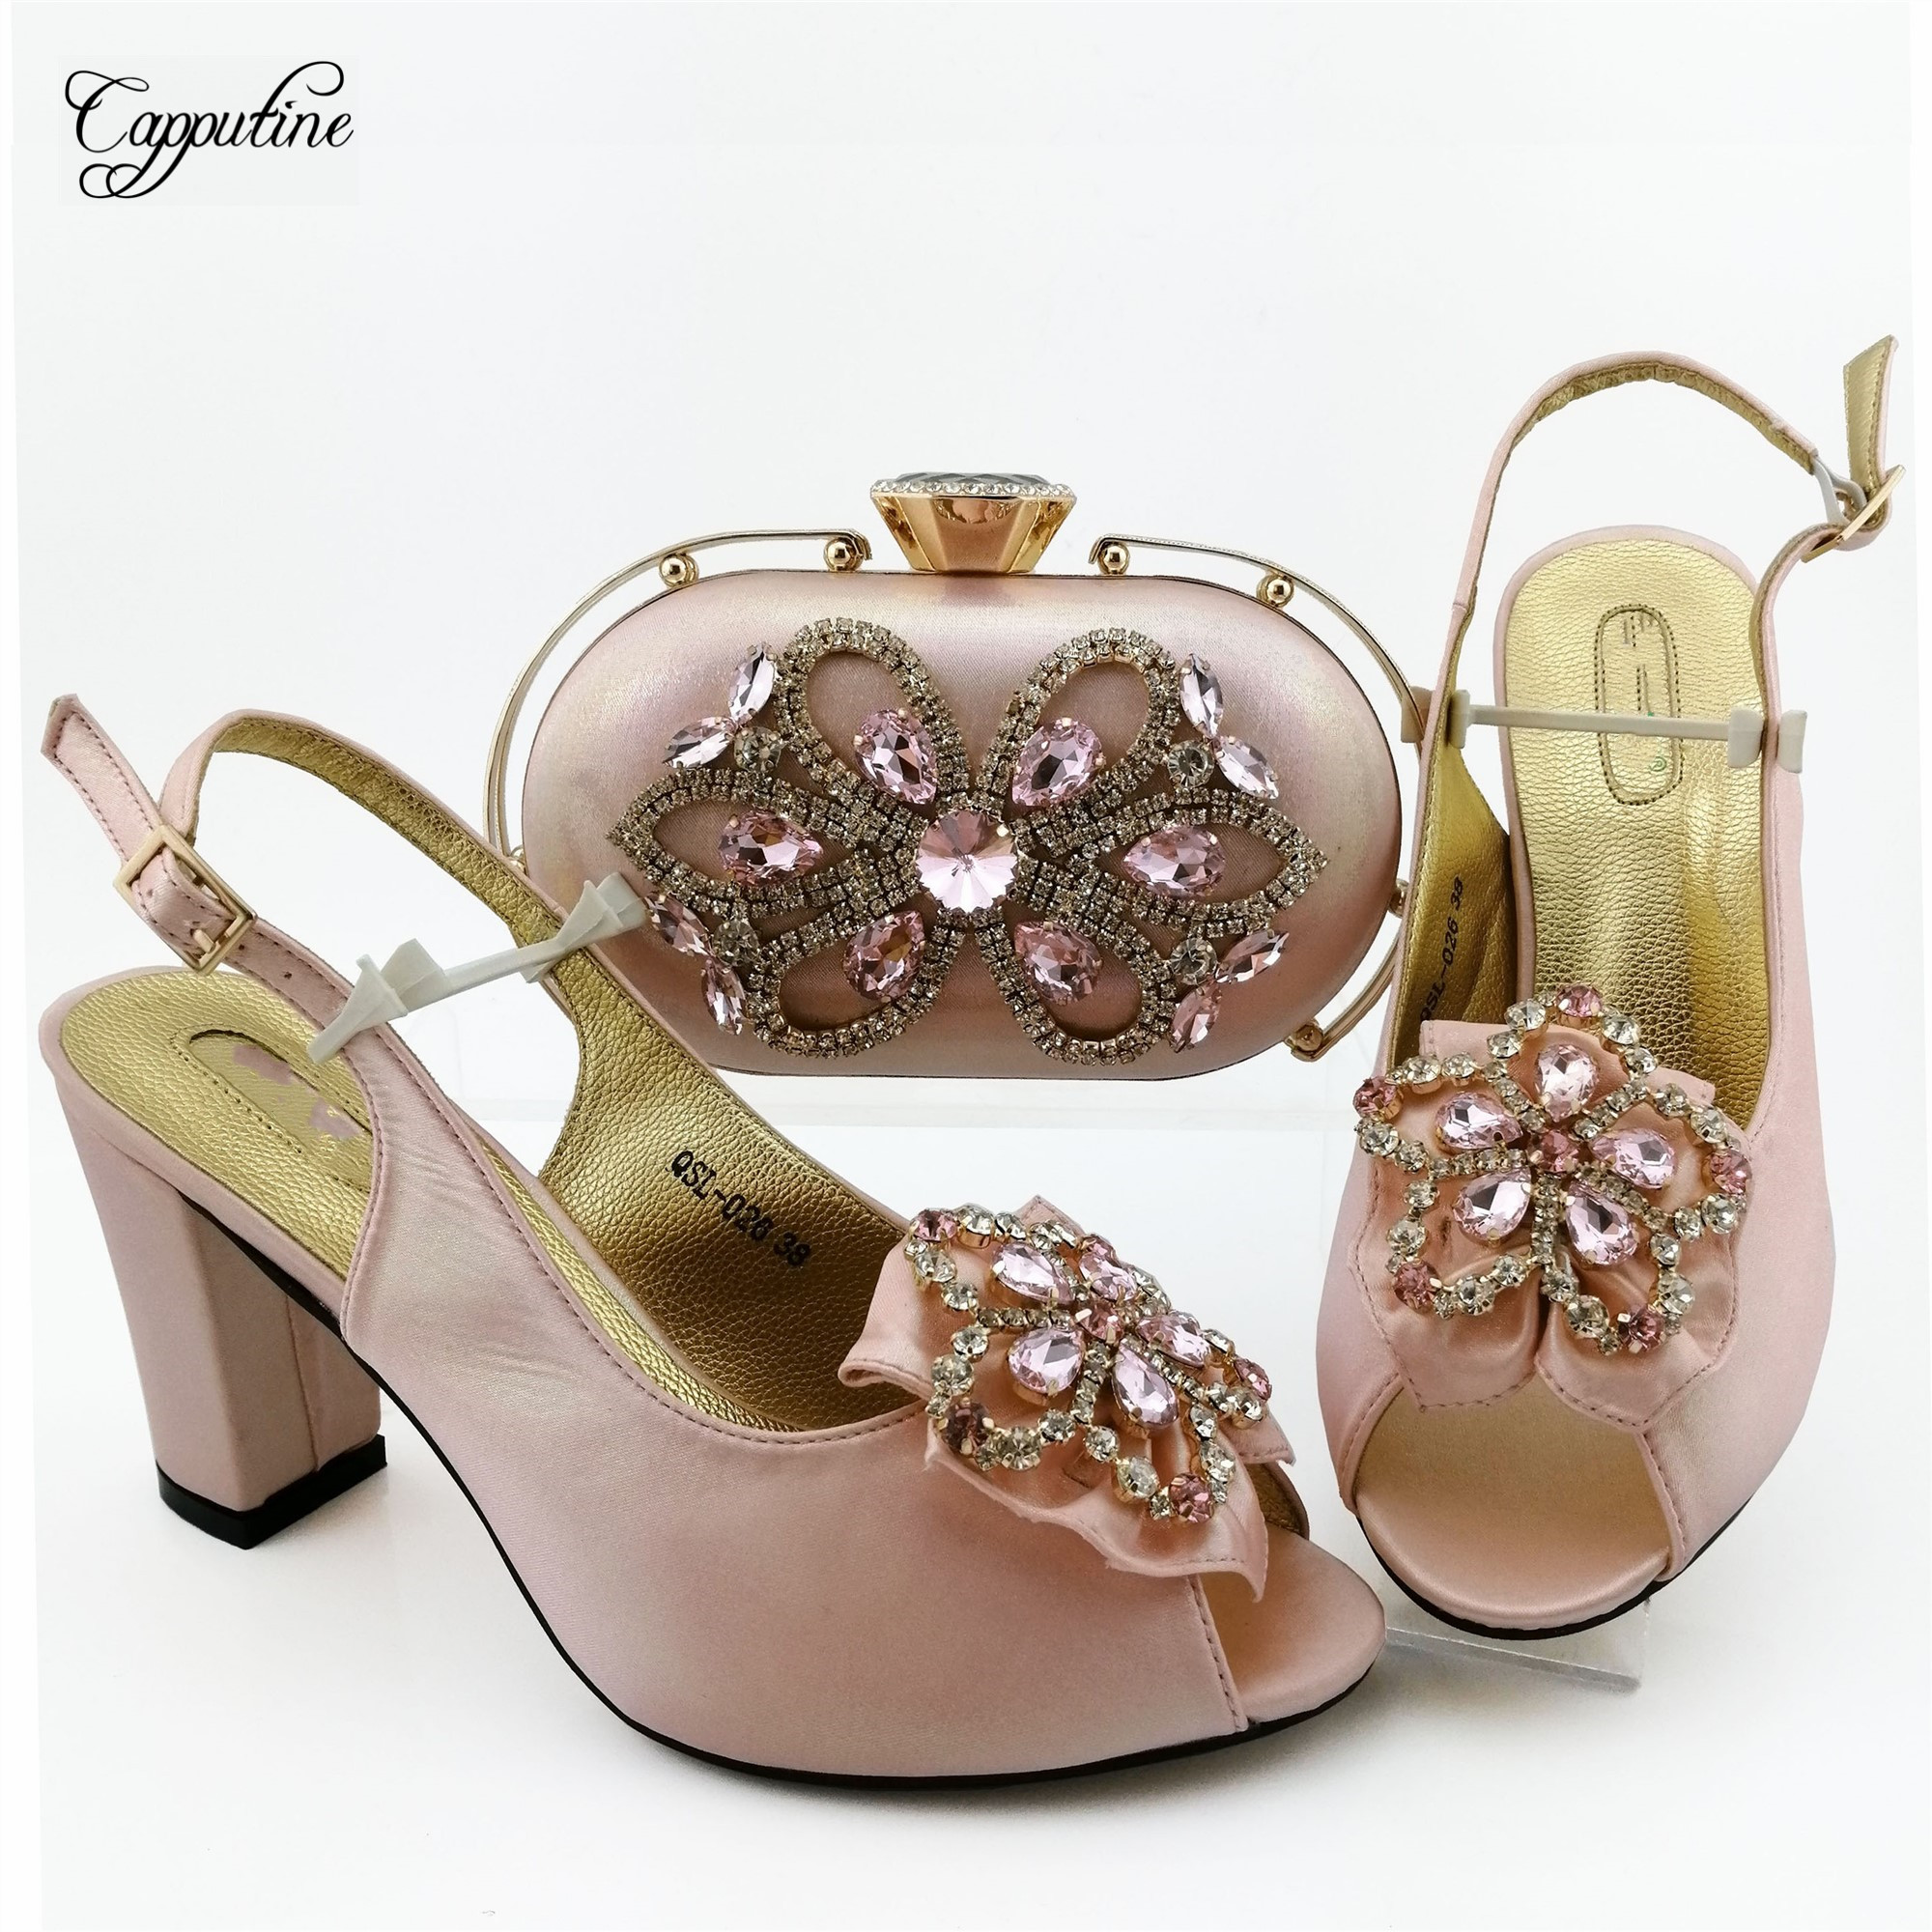 Popular dark green shoes with bag sets Fashion Italian design shoes and purse series QSL026, heel height 9cm - 3